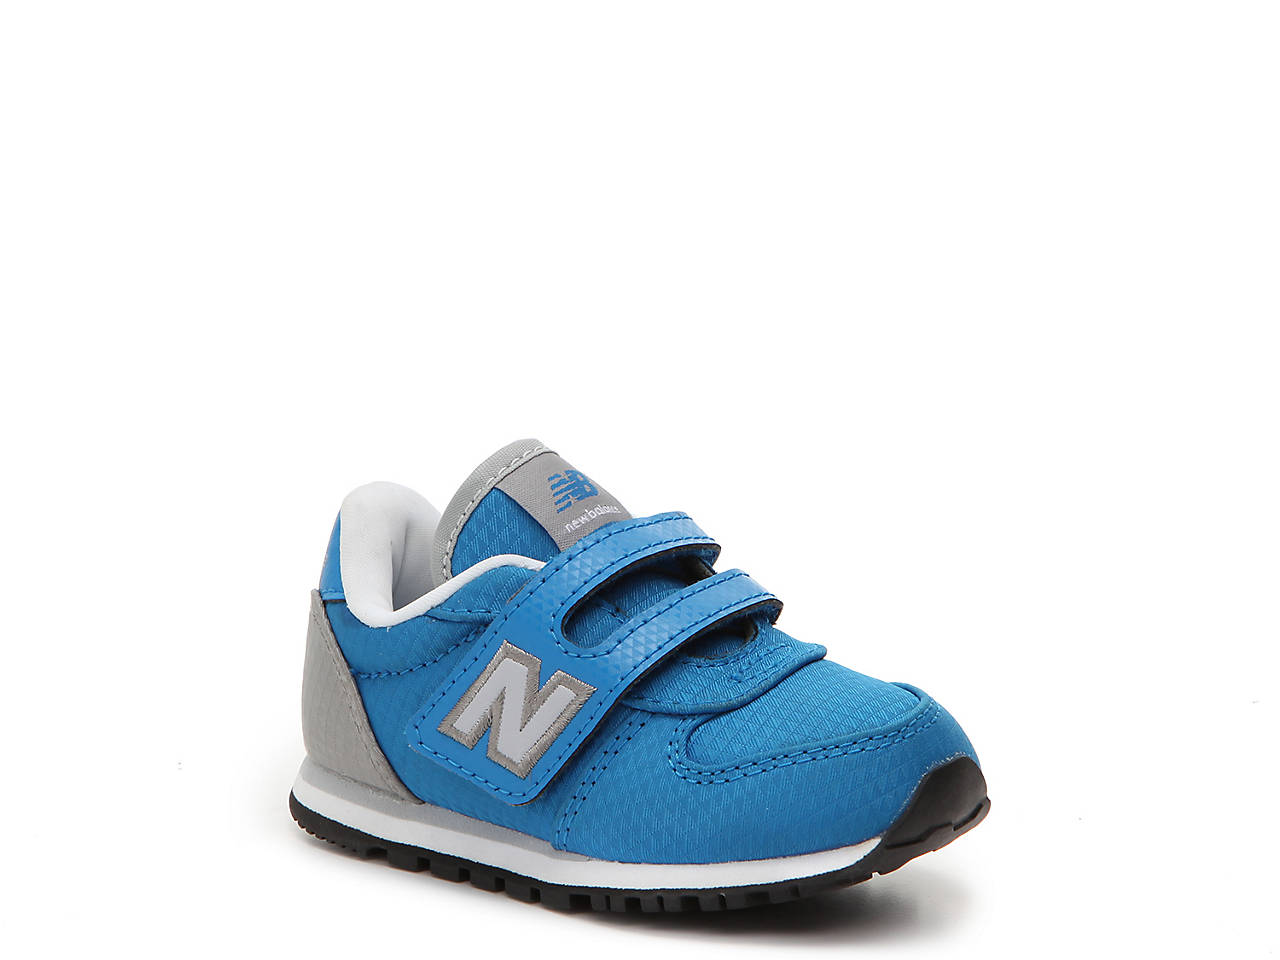 6a91ace94d9 New Balance 311 Toddler Sneaker Kids Shoes